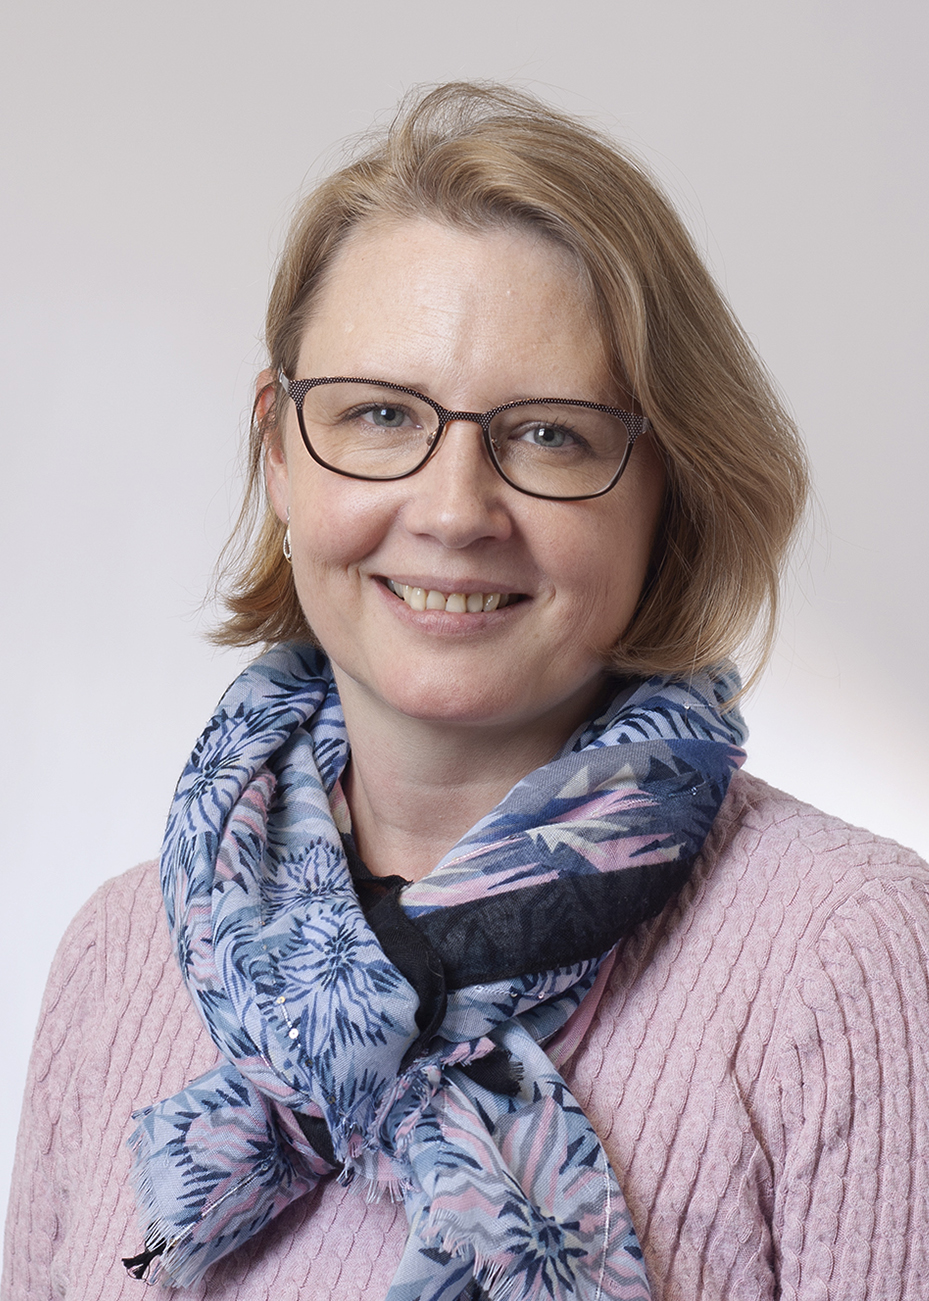 Dorthe Strandbygård